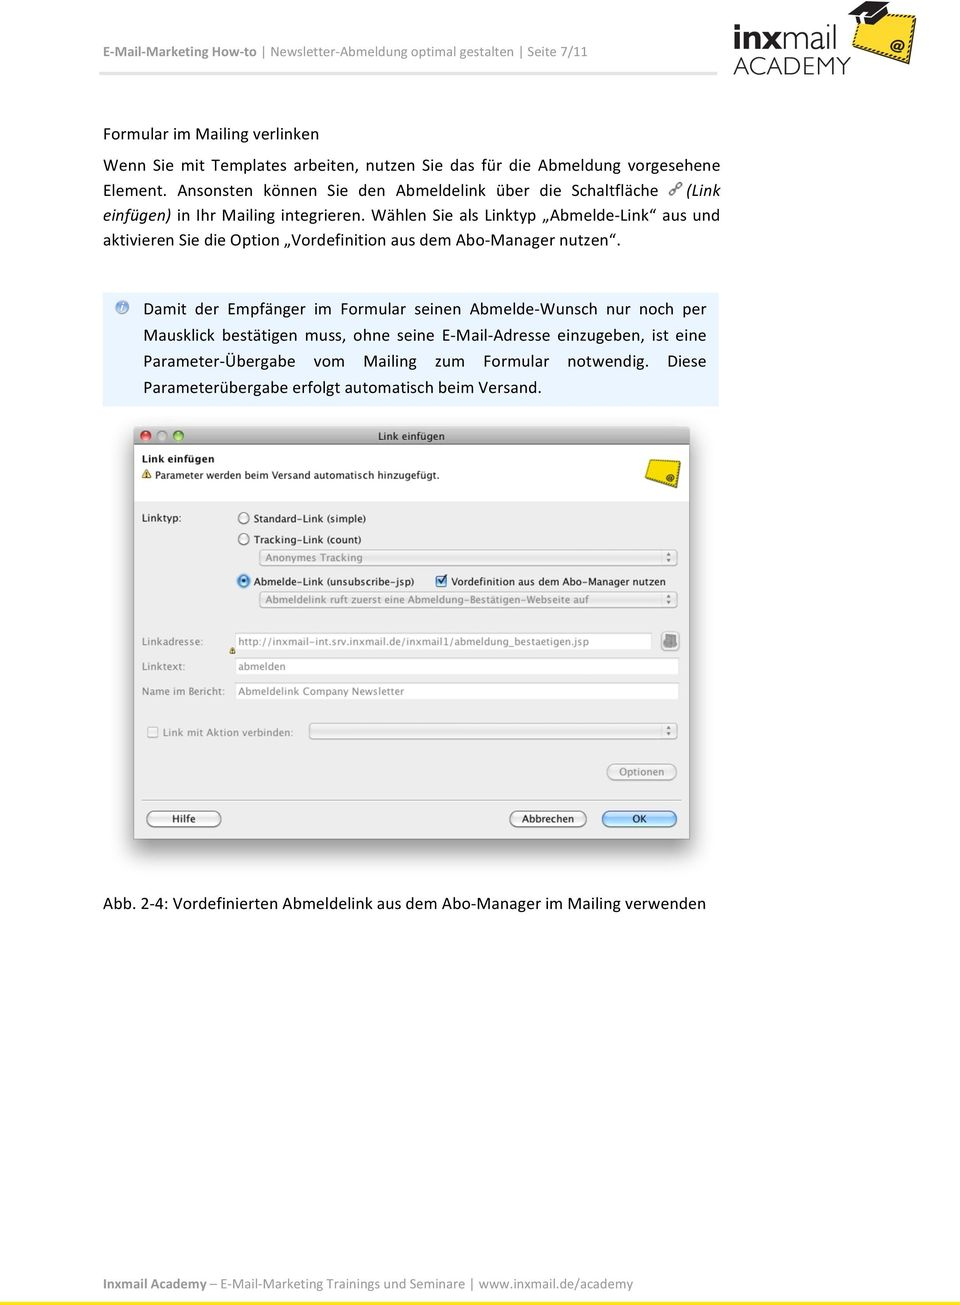 How- to. E- Mail- Marketing How- to. Newsletter- Abmeldung optimal ...